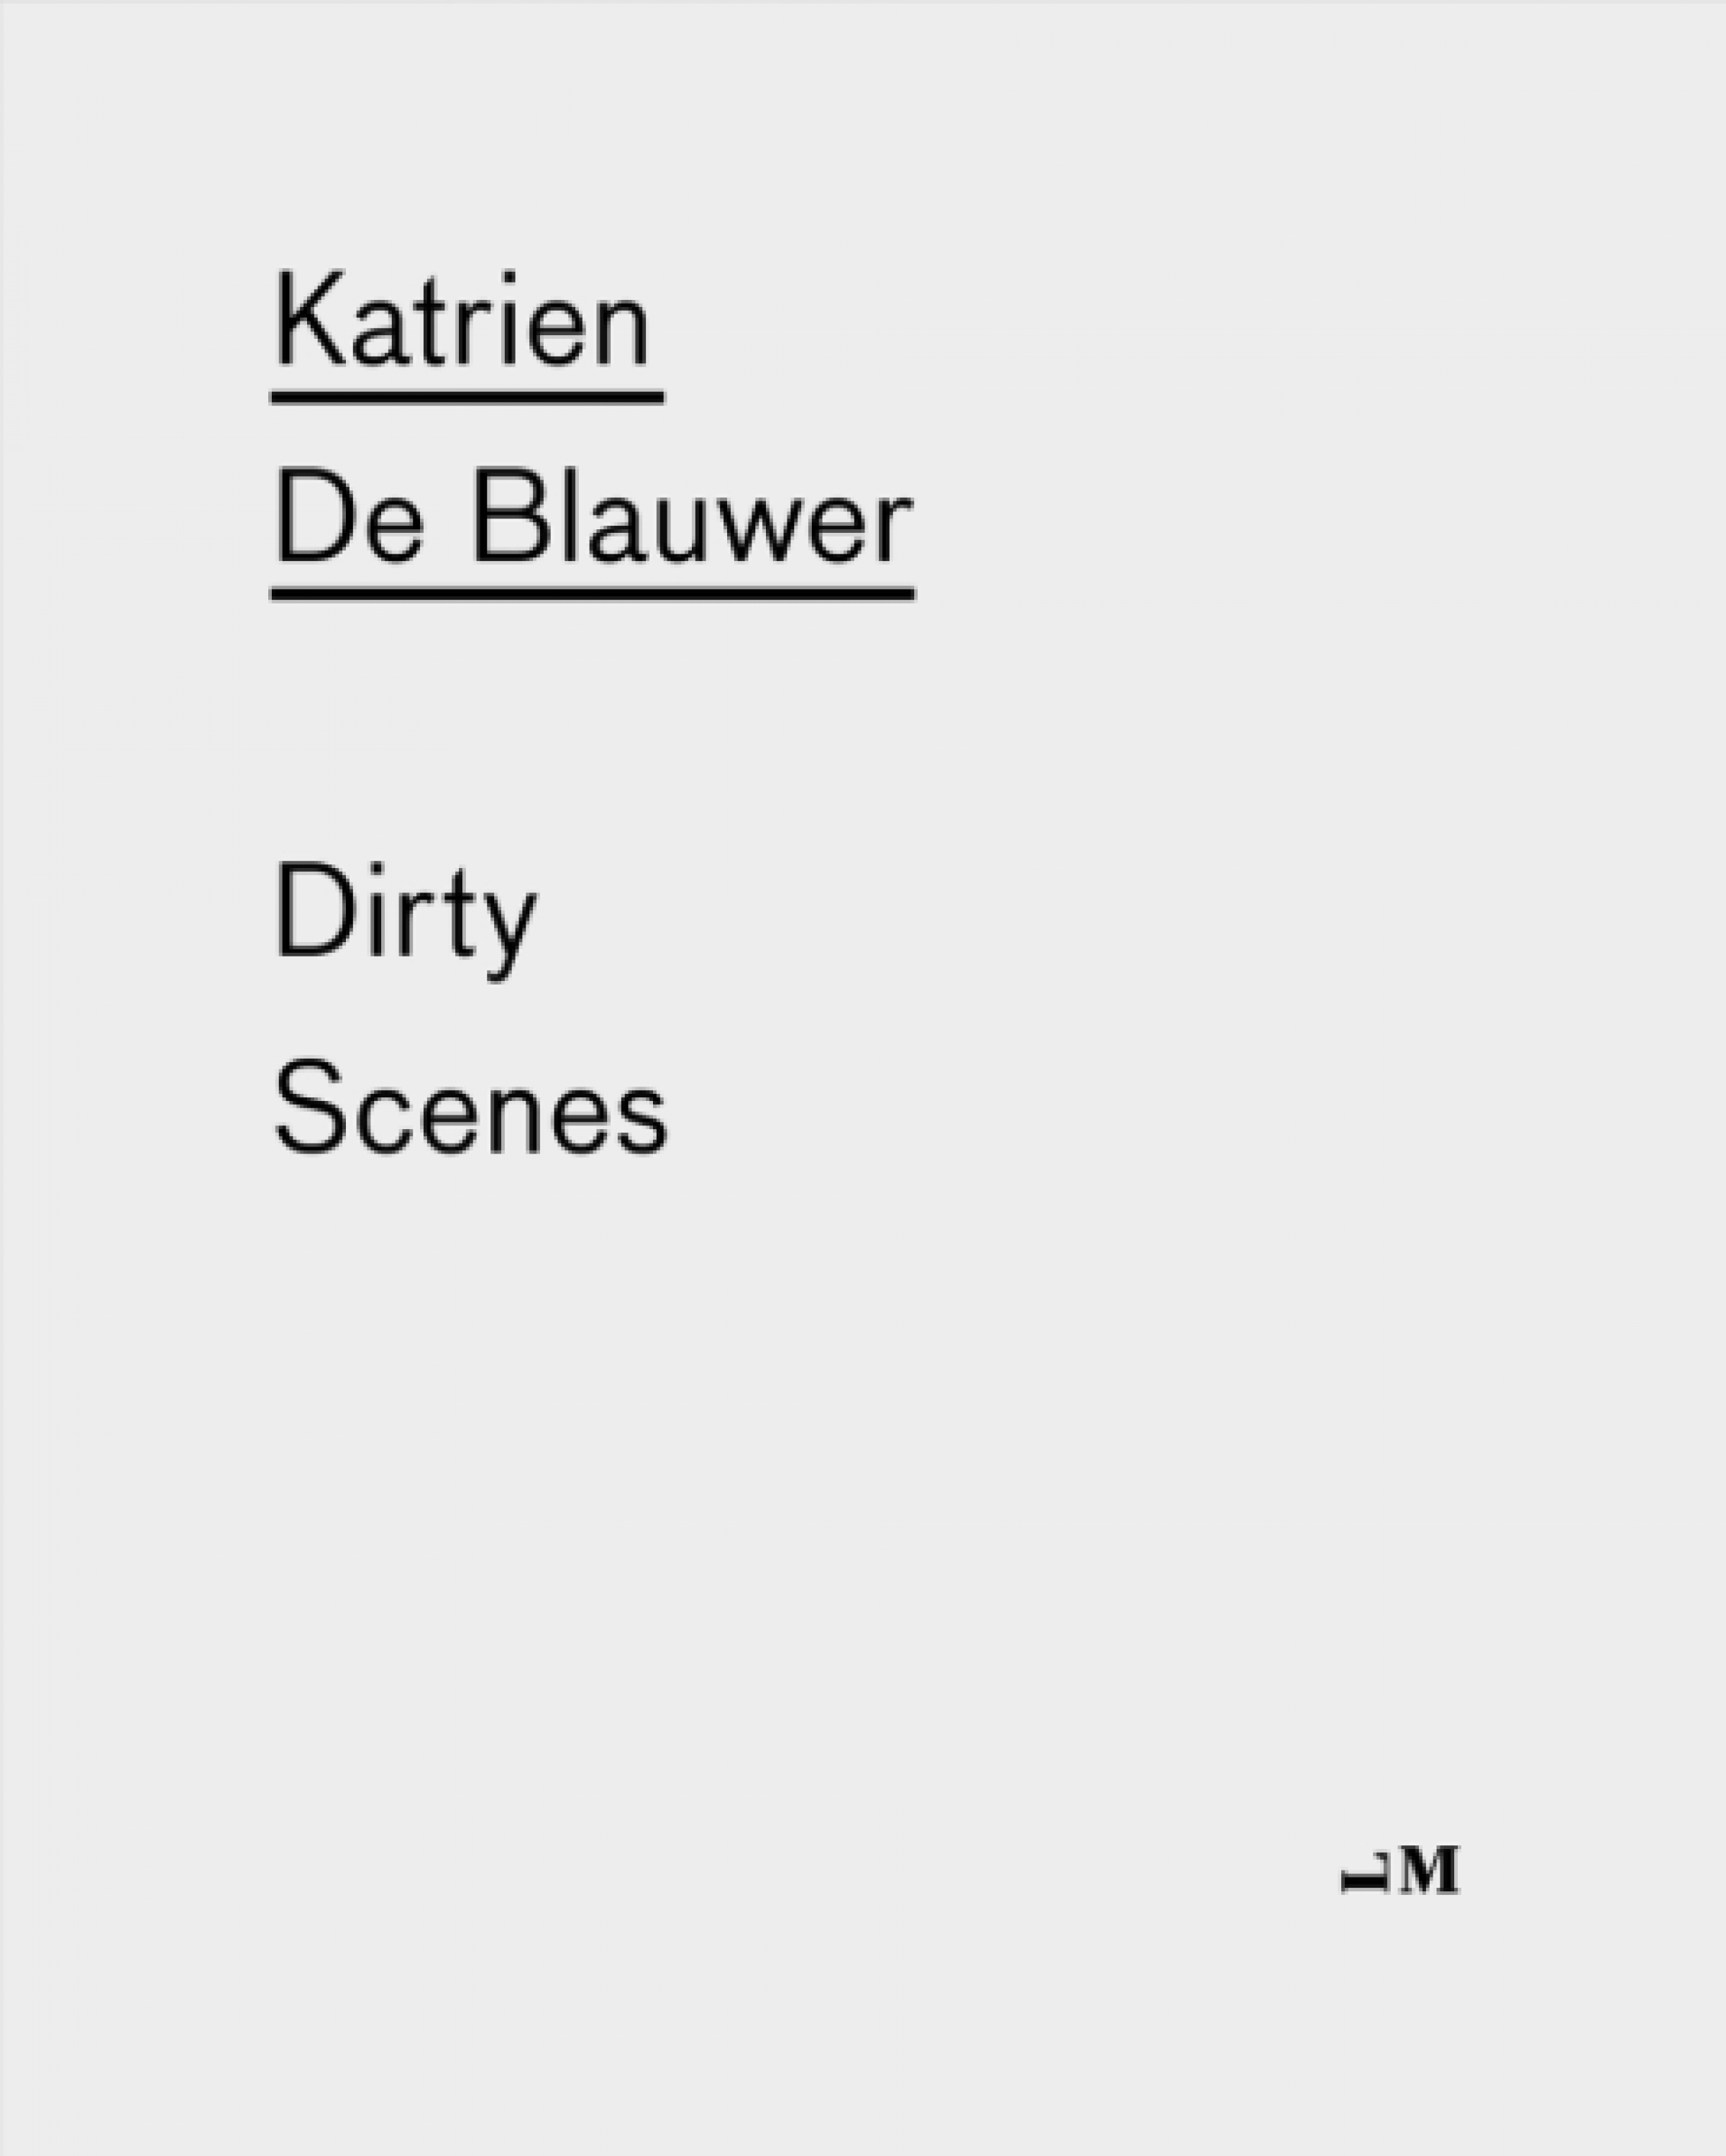 Katrien De Blauwer: Dirty Scenes